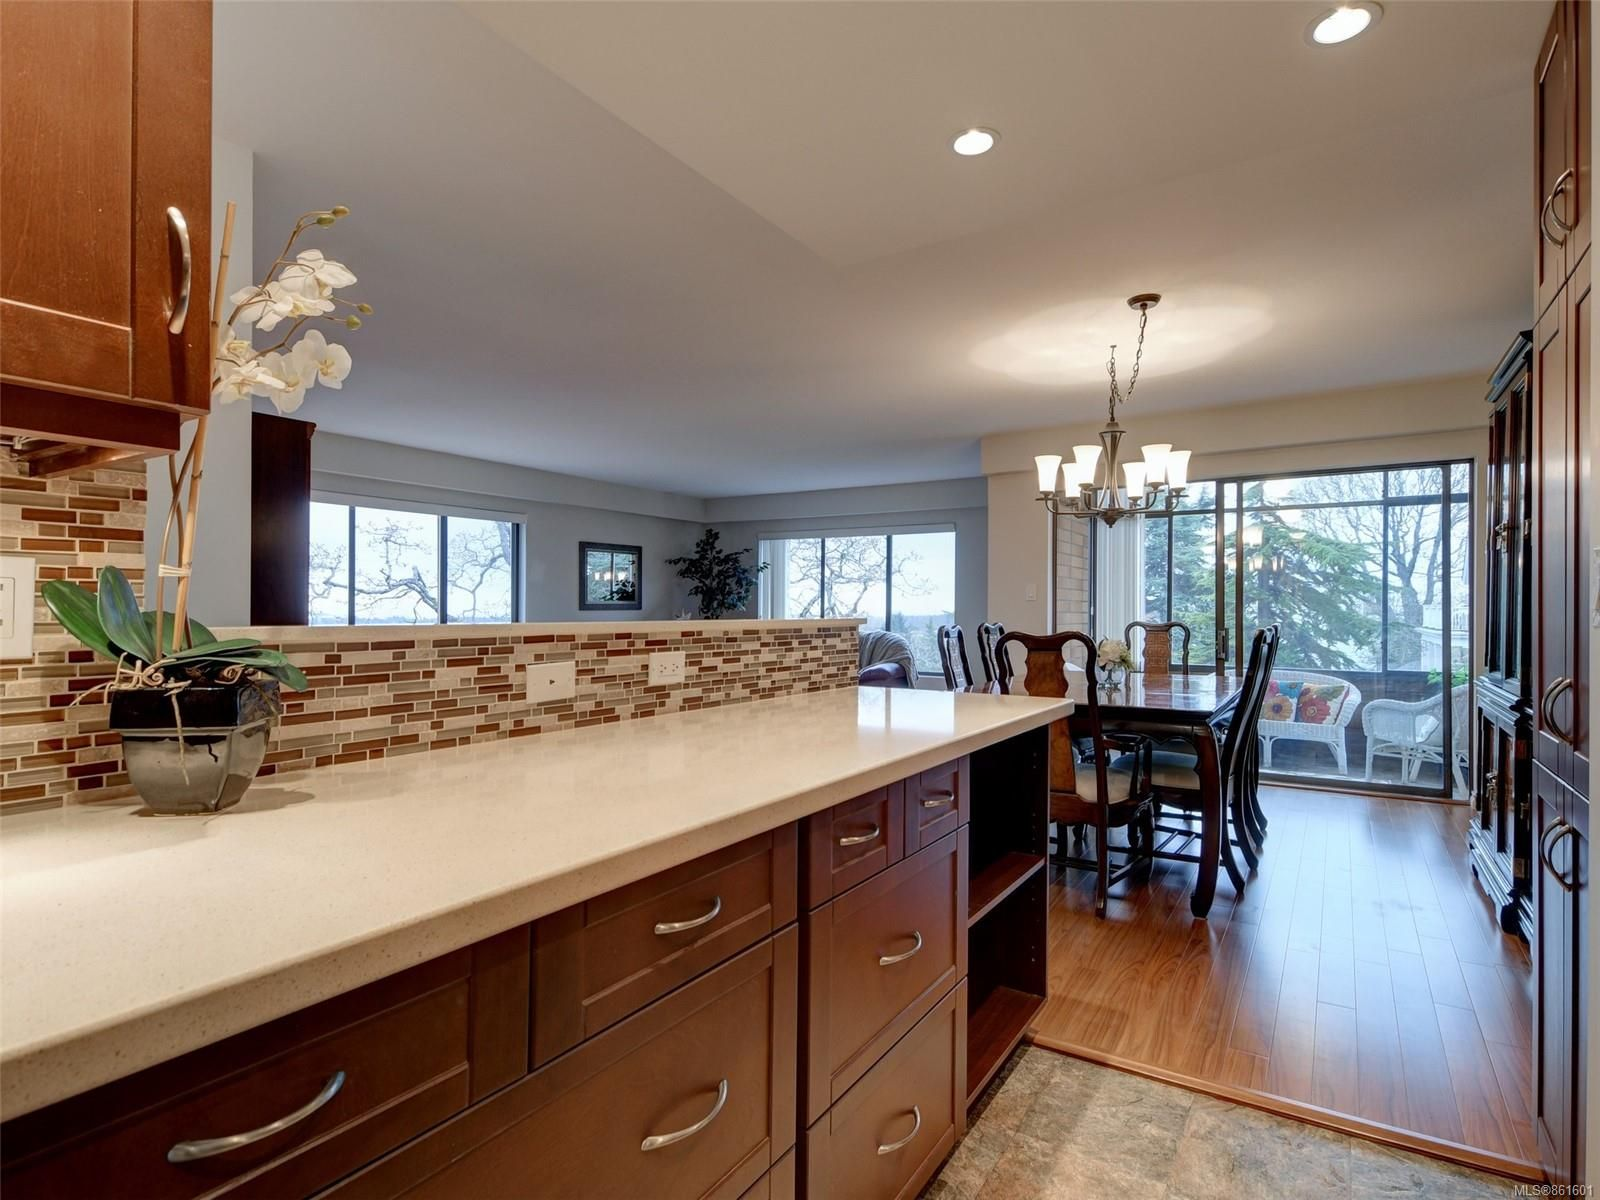 Renovated Kitchen with wall removed to open space and enjoy wrap-around windows